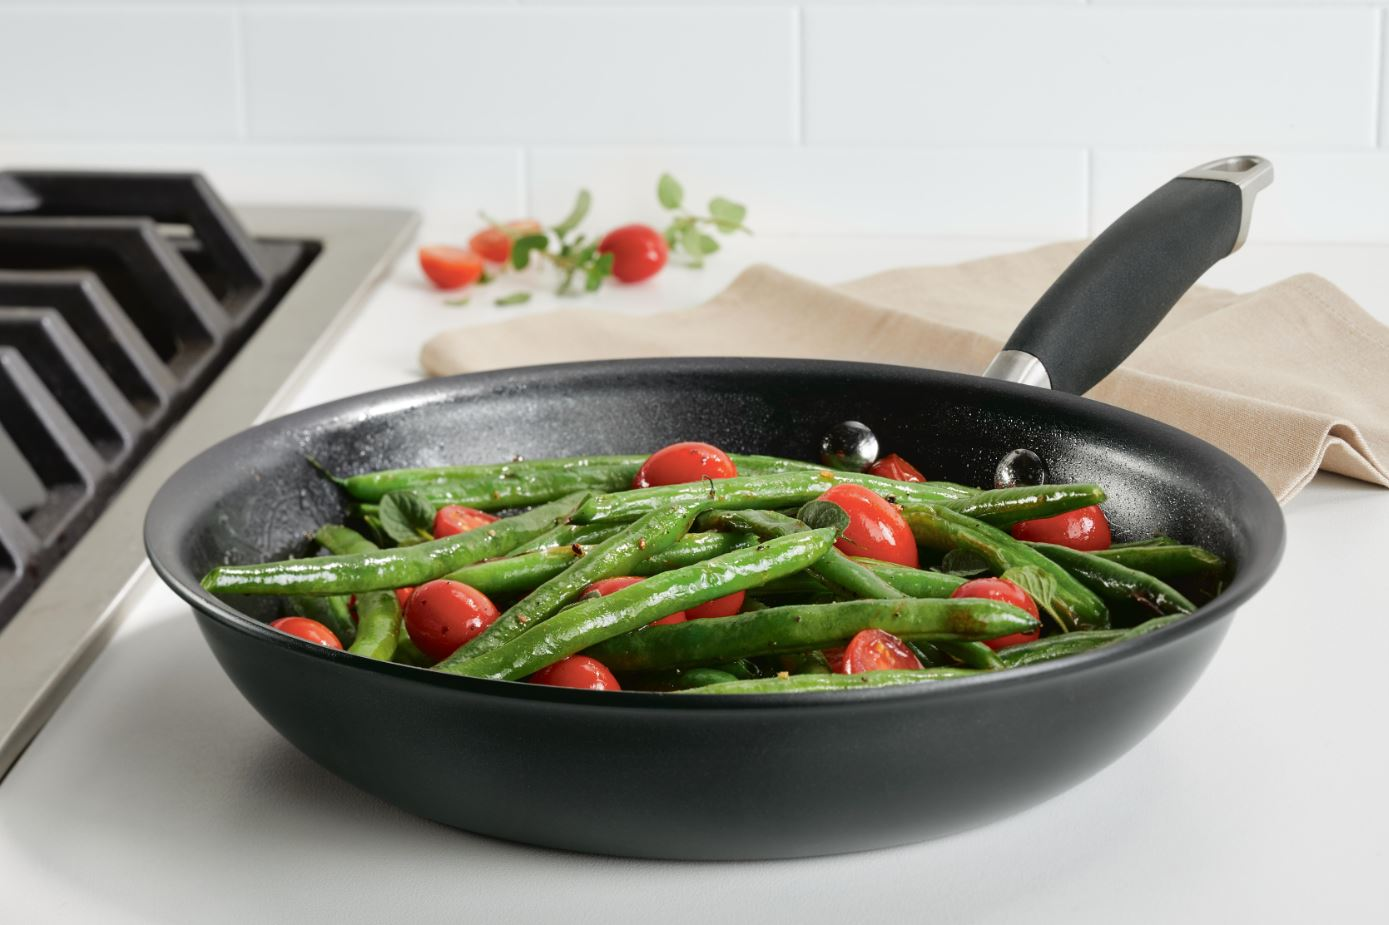 Anolon Advanced Home Skillet with Veggies in Onyx